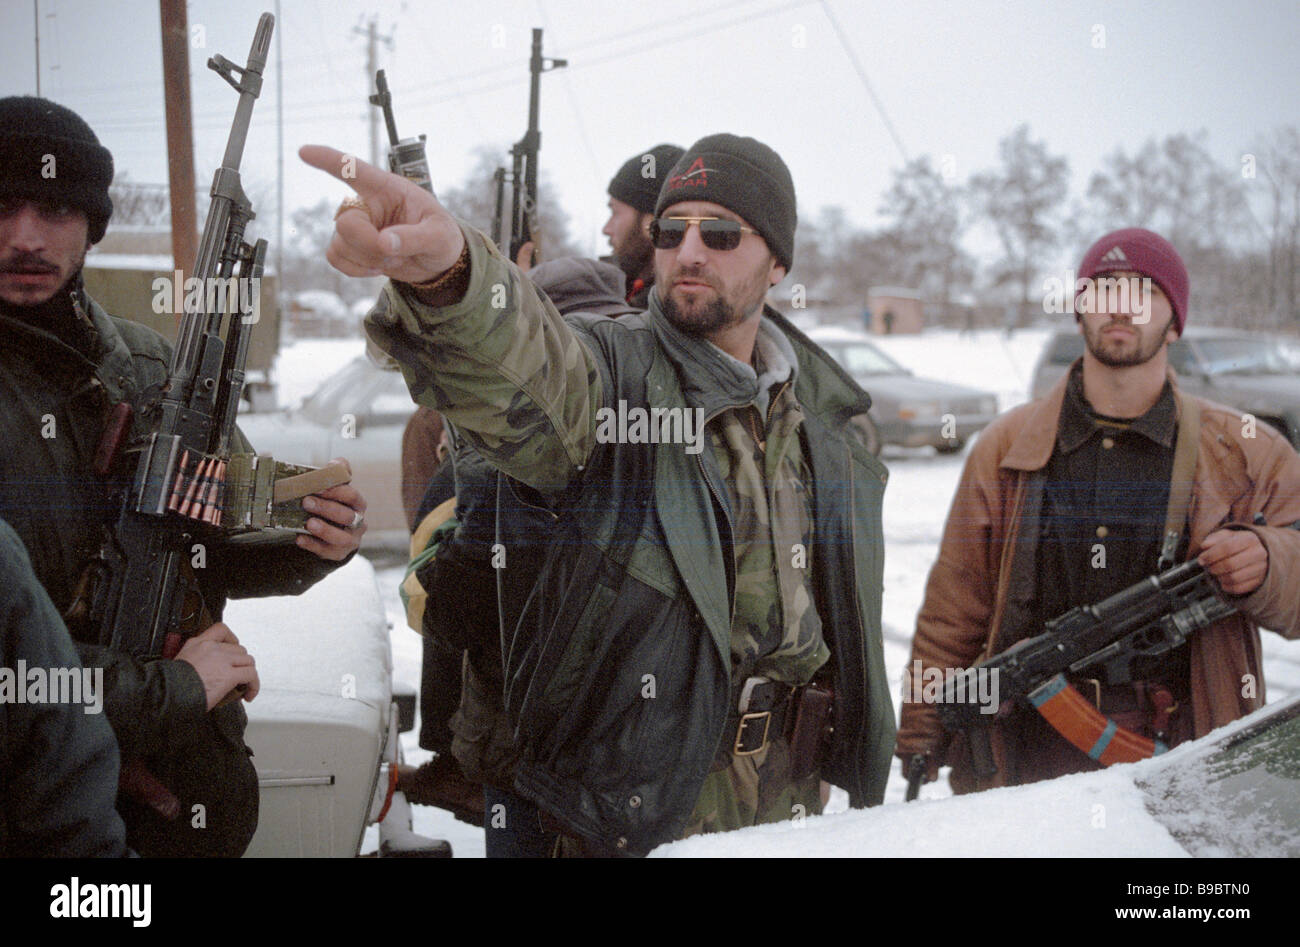 One of the Chechen opposition leaders Ruslan Labazanov center - Stock Image